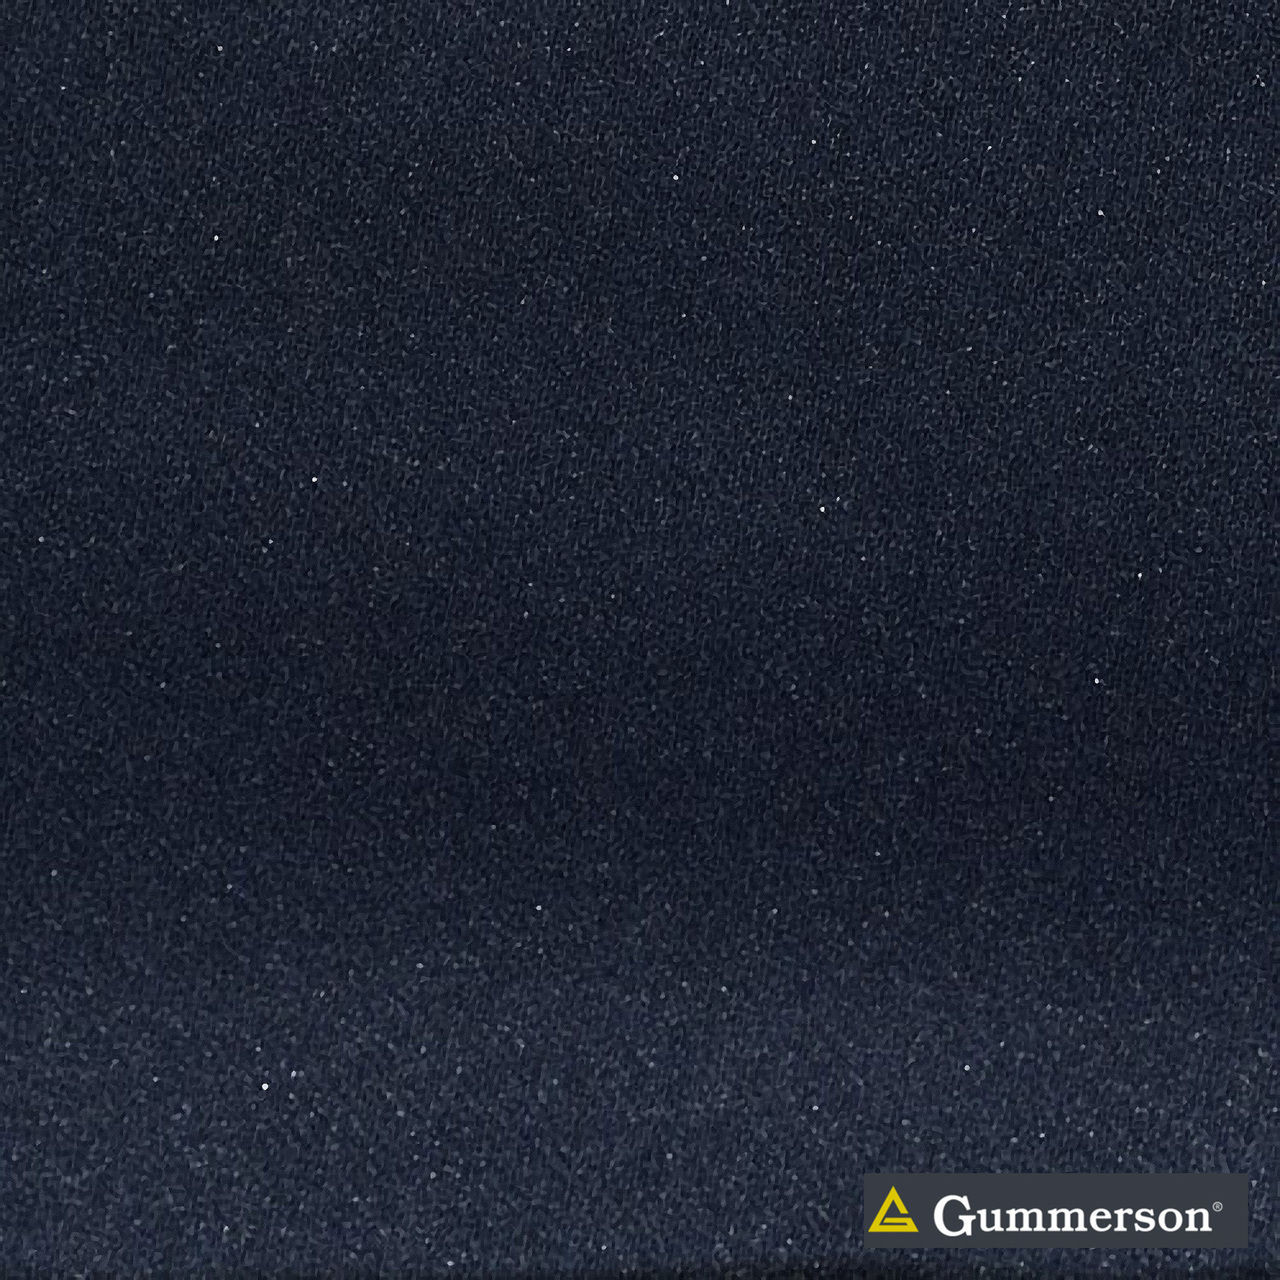 Gummerson - Continuous-Softweave Midnight Room-Darkening 290cm  | Curtain Fabric - Blue, Fire Retardant, Plain, Synthetic, Washable, Weave, Domestic Use, Softweave, Wide Width